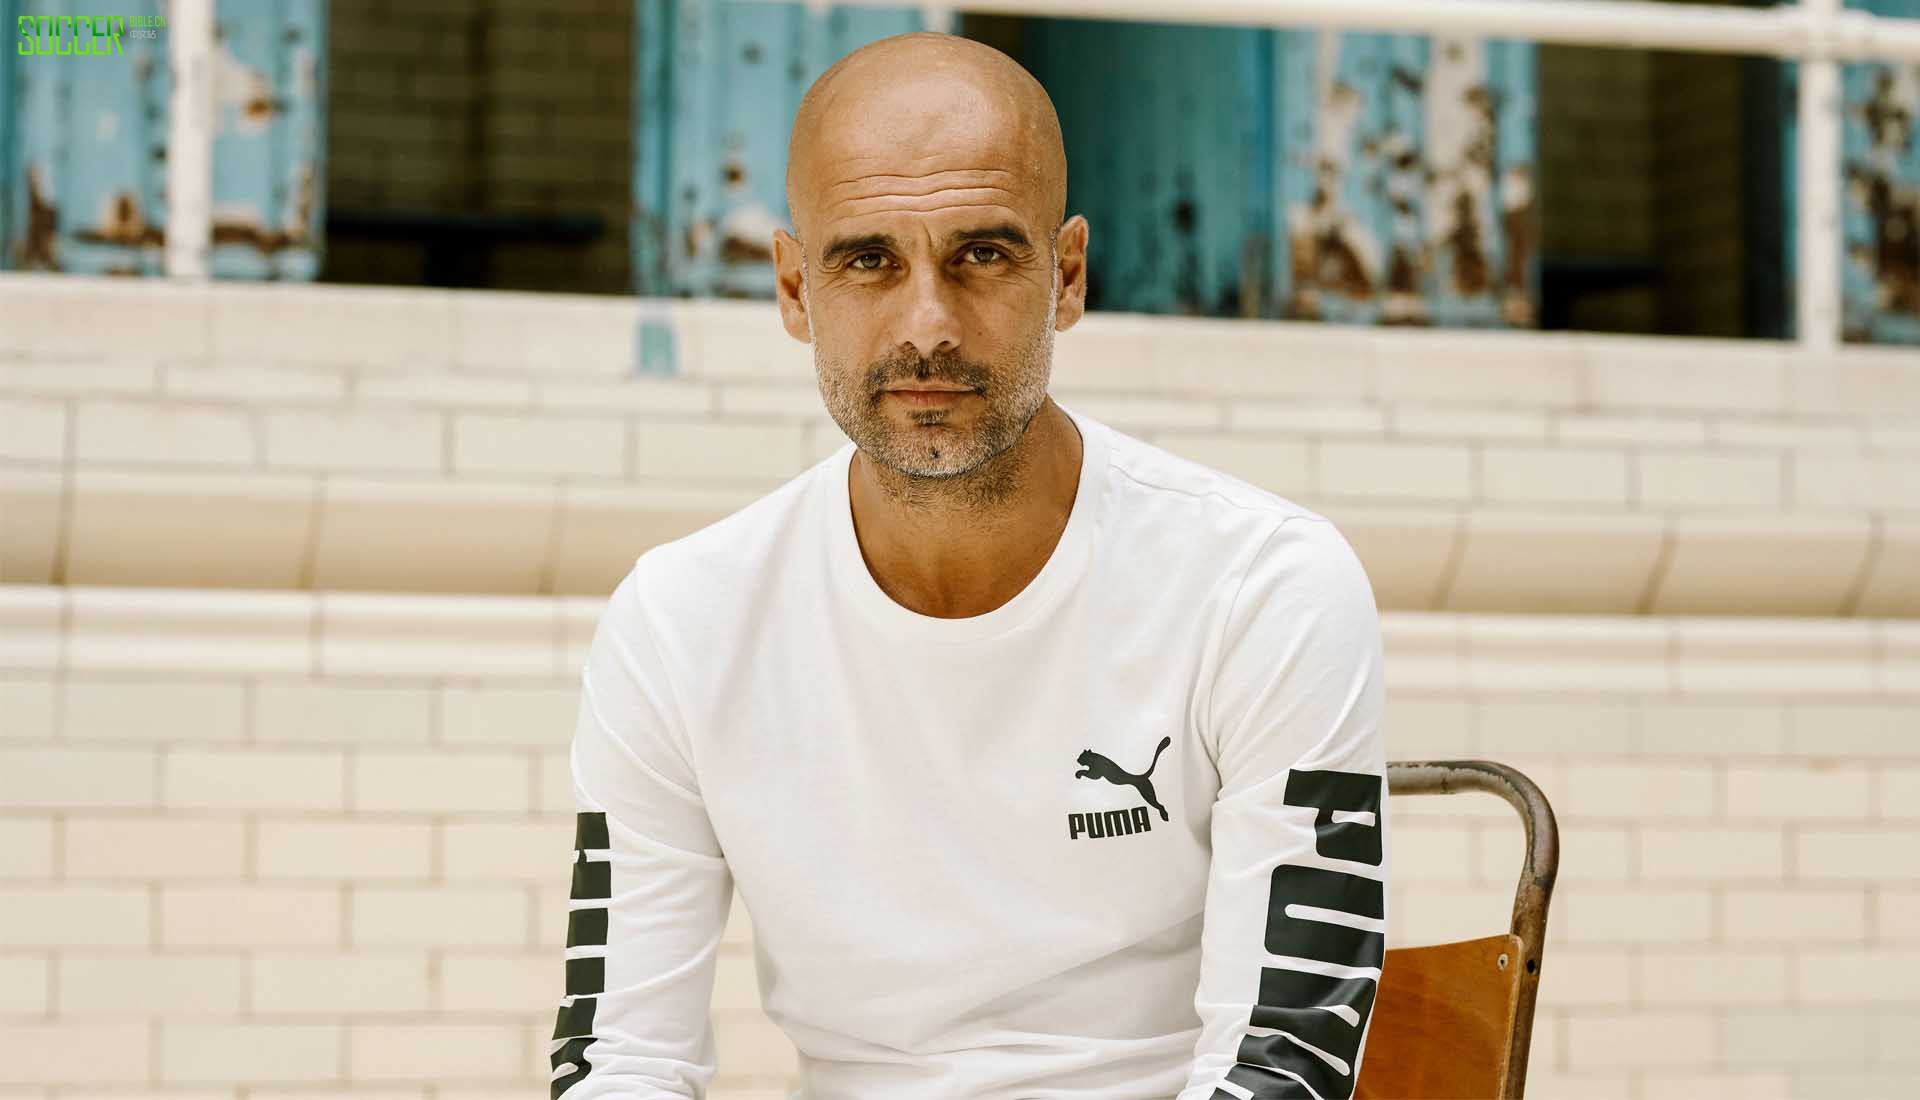 5-pep-puma-announcement